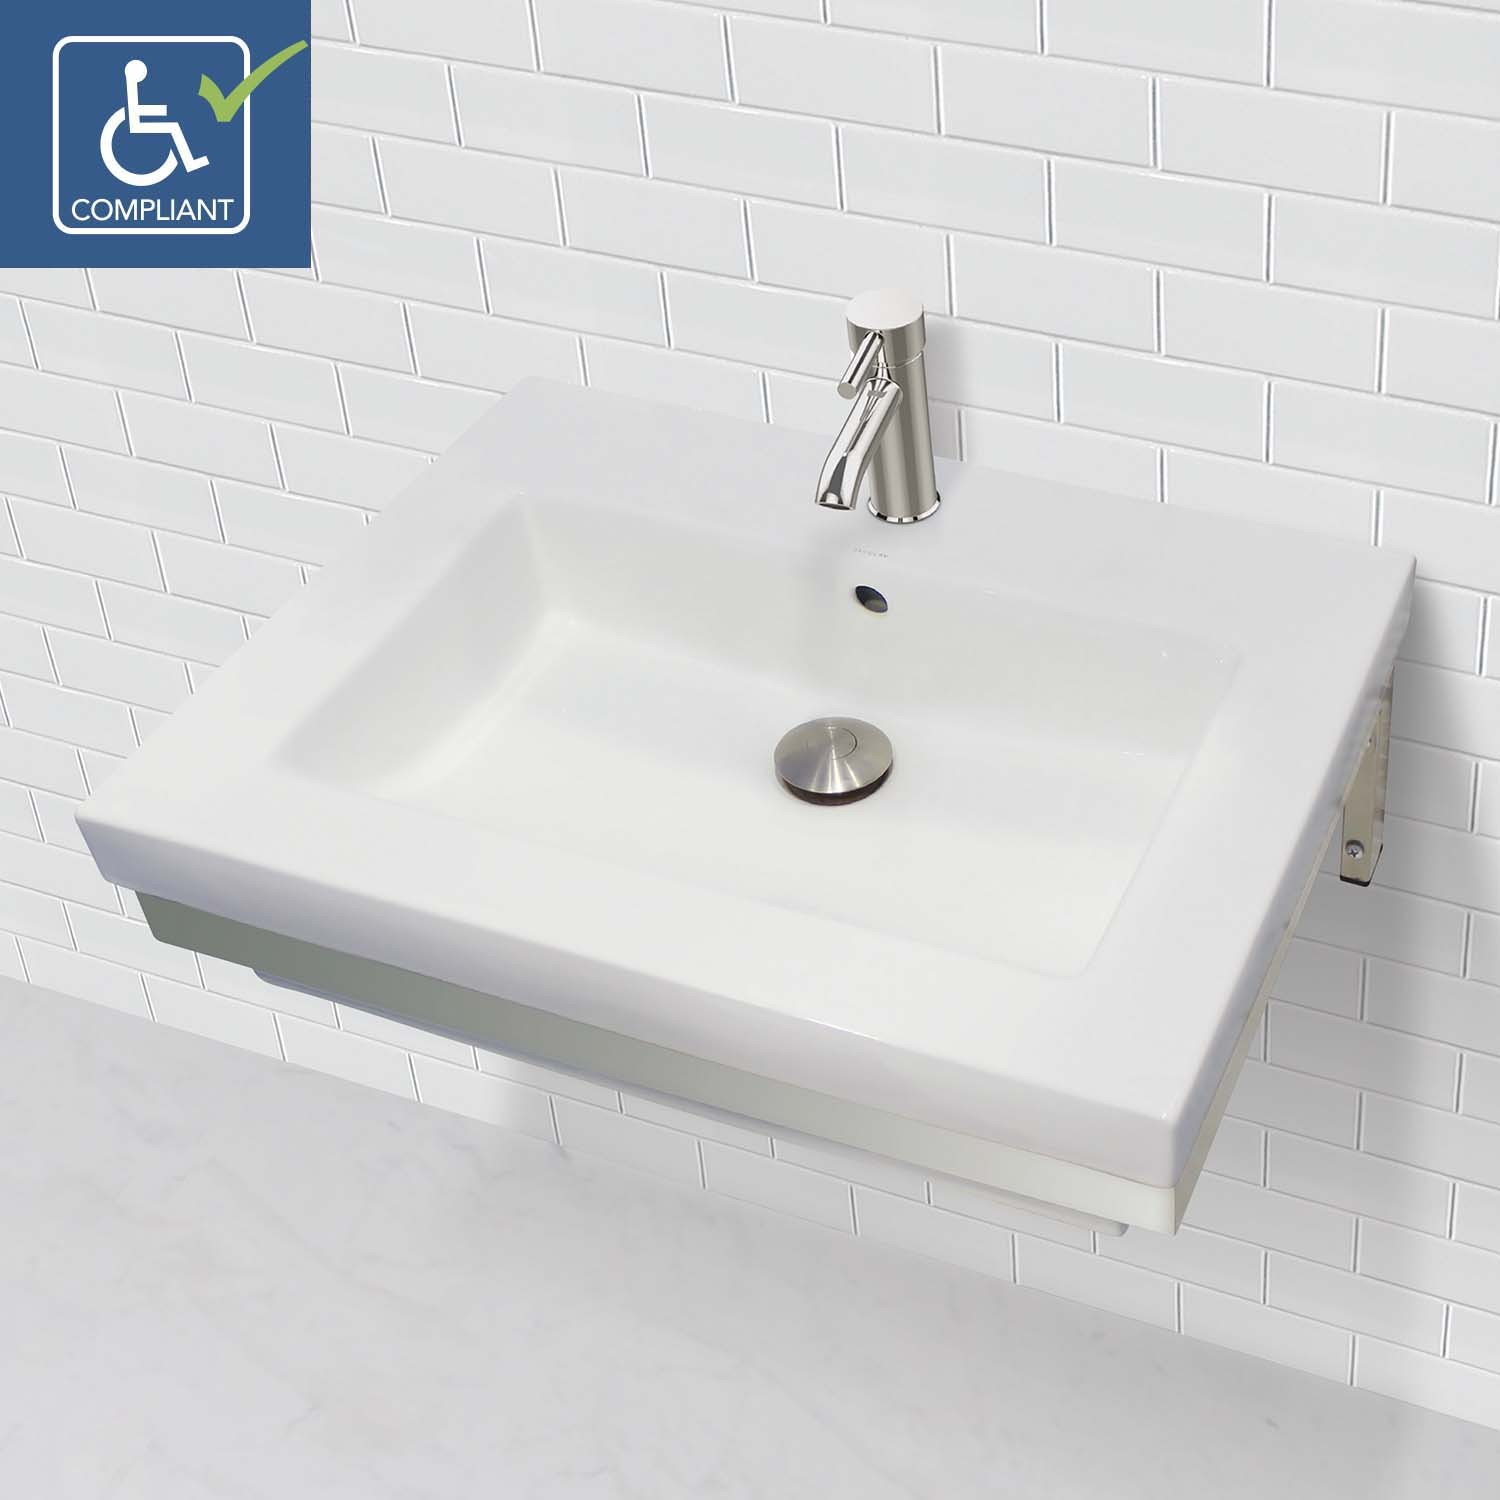 CLASSICALLY REDEFINED® WALL-MOUNT RECTANGULAR BATHROOM SINK WITH STAINLESS STEEL MOUNTING BRACKET